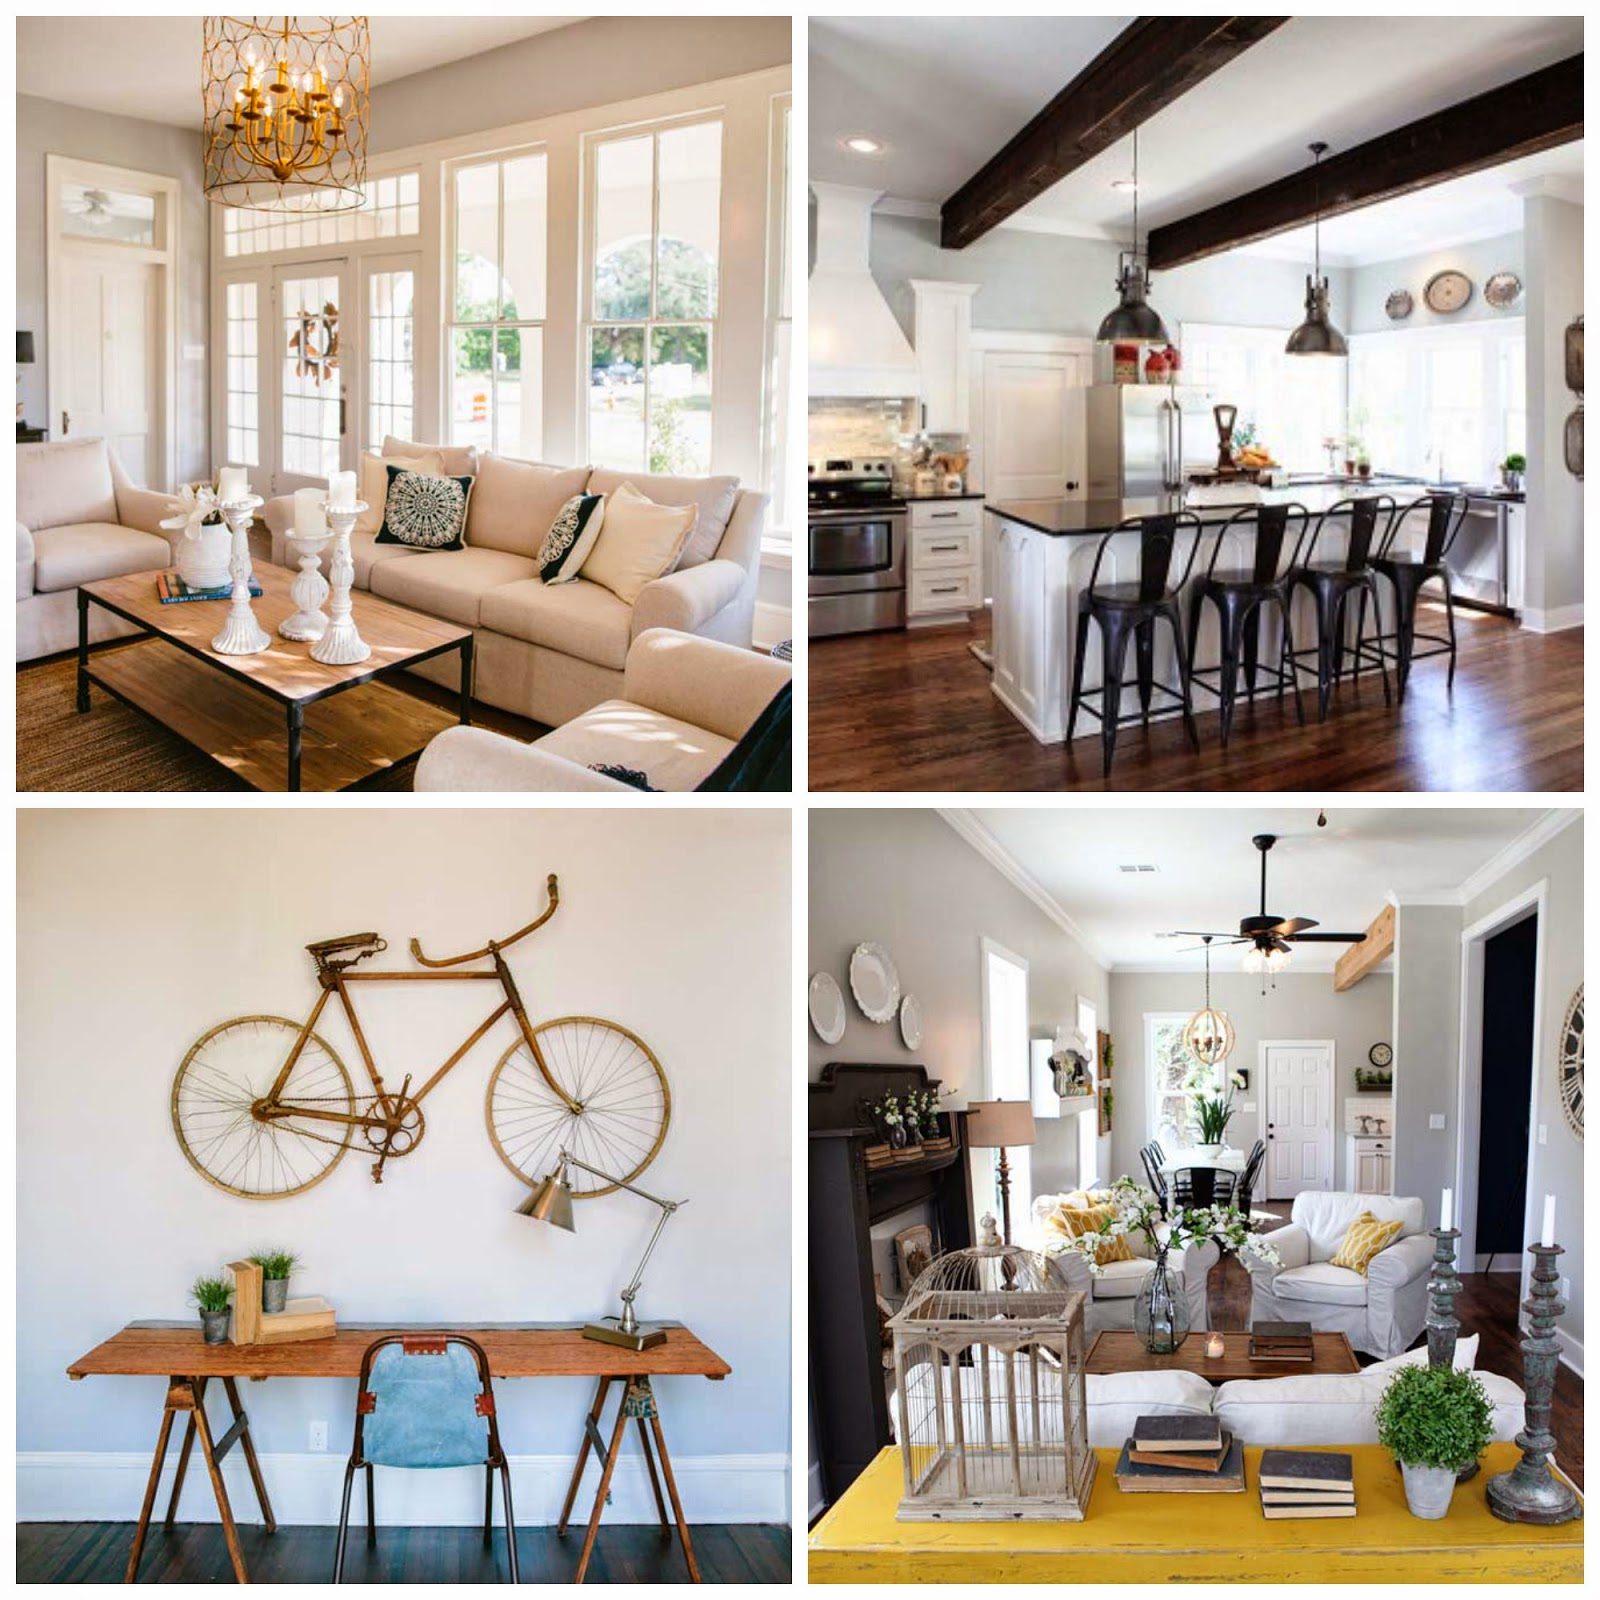 Designs By Joanna Gaines Of Hgtv Fixer Upper Owner Of: SLIGHTLY OBSESSED: FIXER UPPER